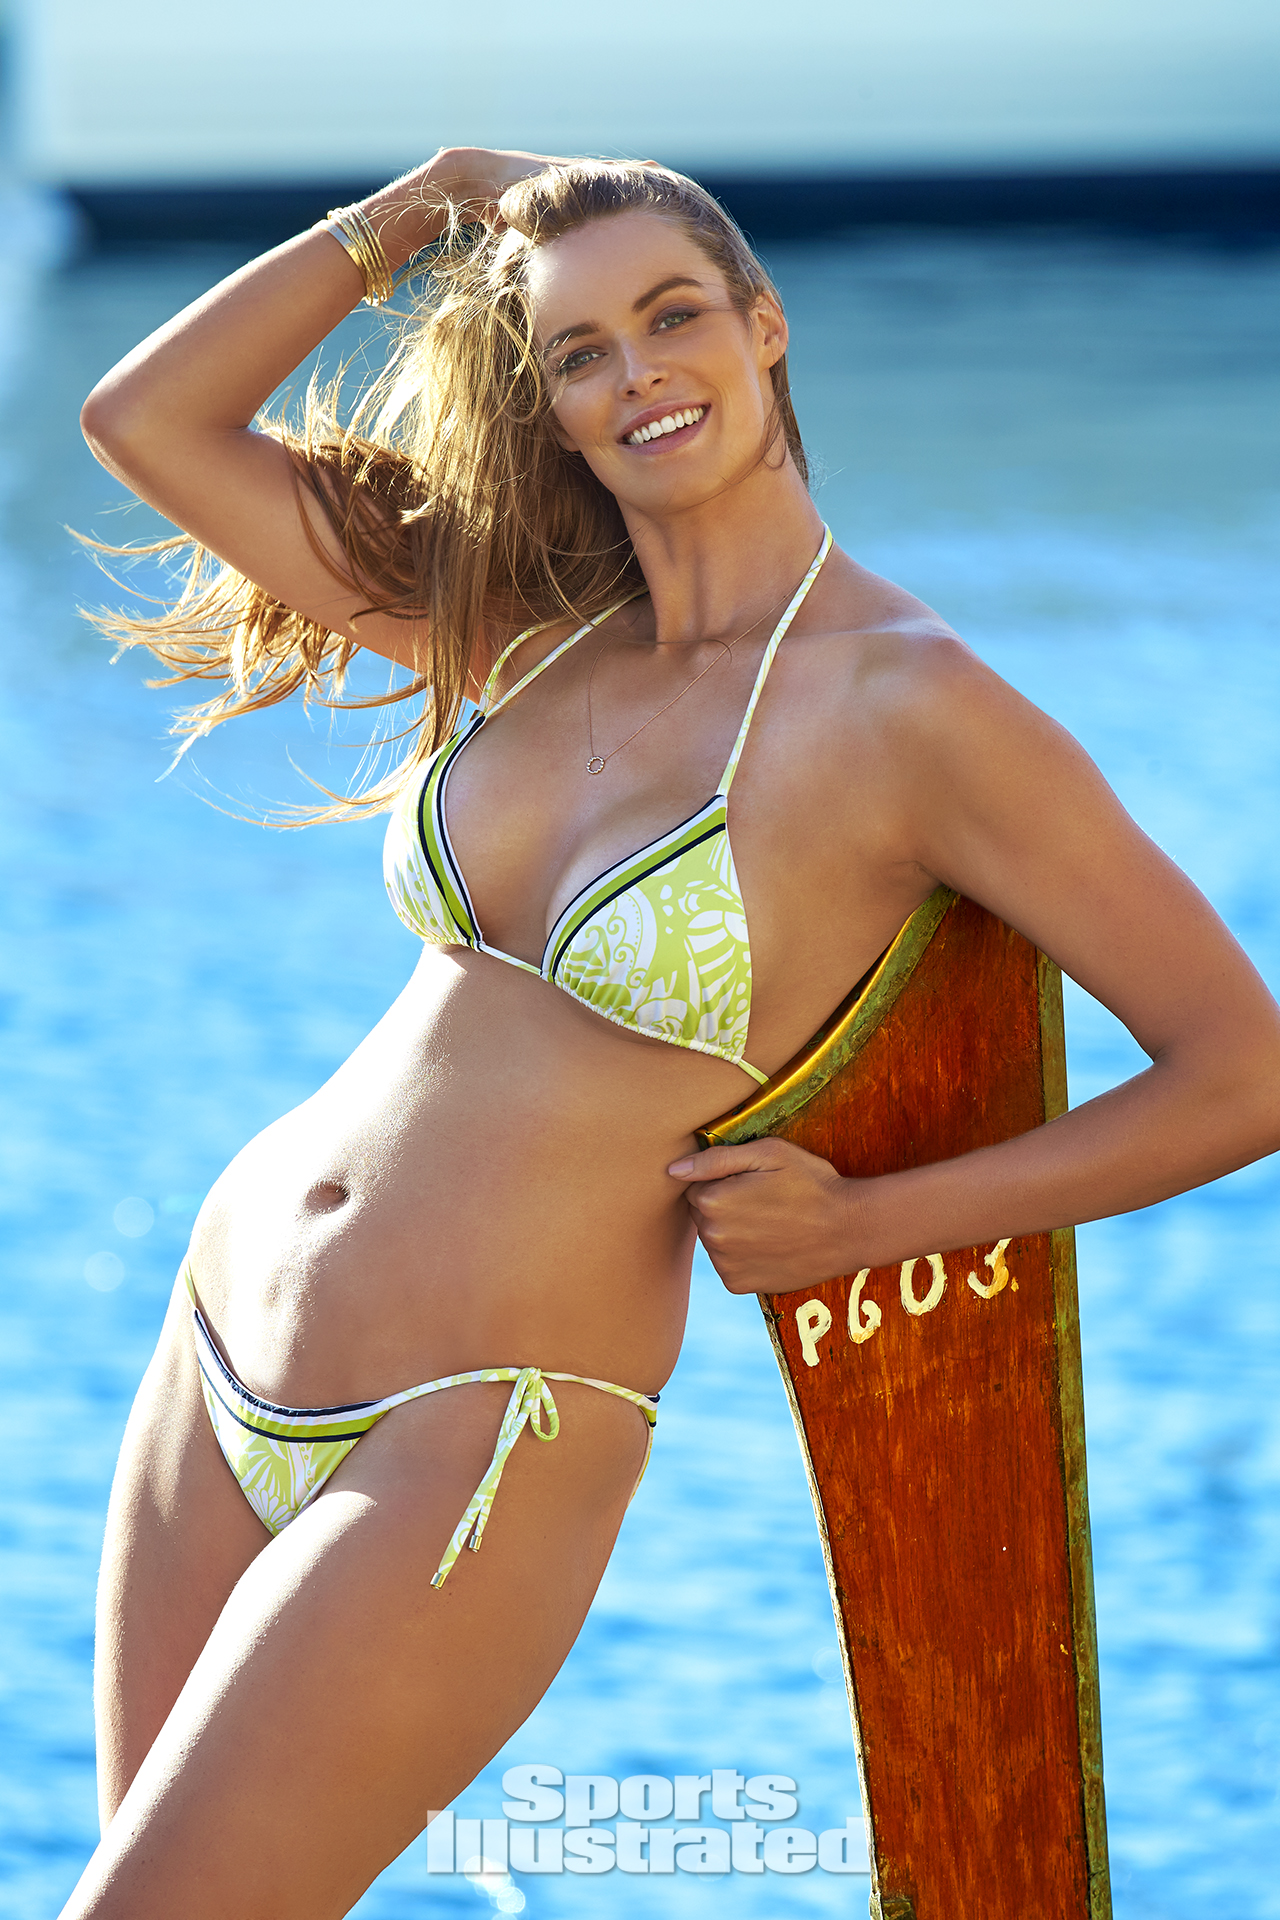 Robyn Lawley was photographed by Ben Watts in Malta. Swimsuit by Ola Vida.